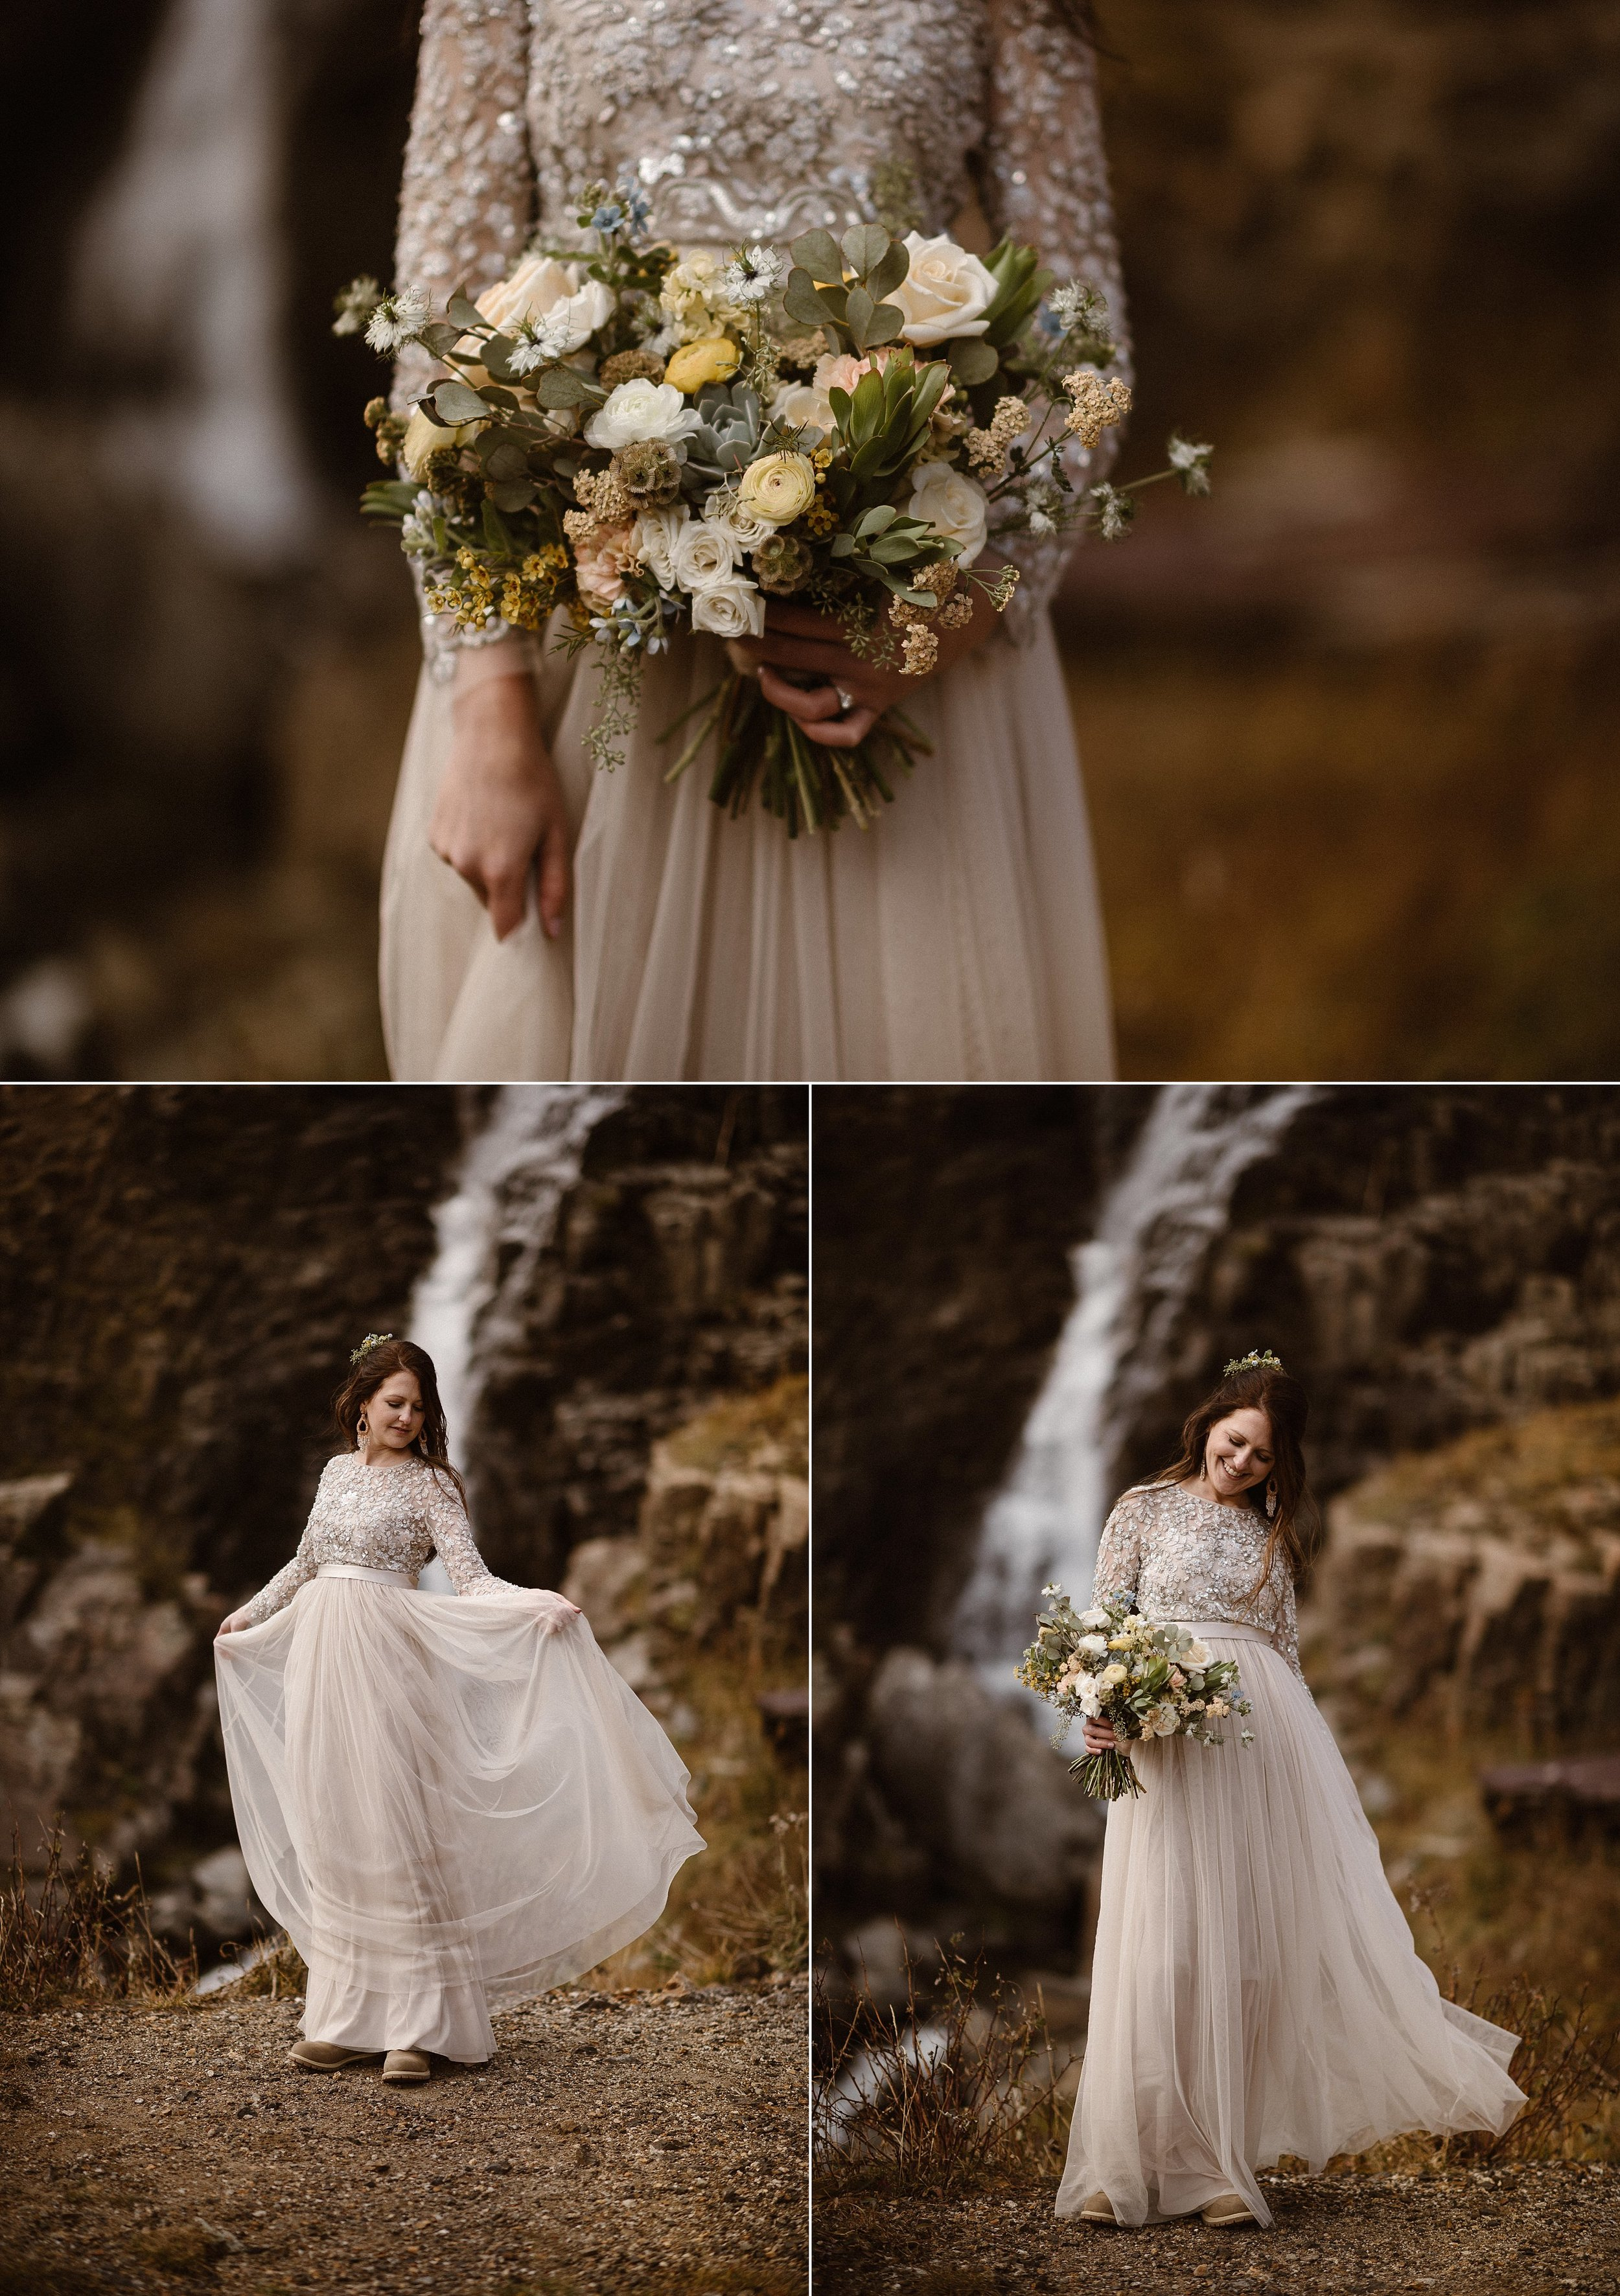 Keeping with her theme of throwing (most) tradition to the wind, Jen donned a champagne colored wedding dressed, the bodice riddled with jewels. She carried a neutral rose and greens bouquet that was the perfect contrast to the bright tones of autumn in Ouray, Colorado where she and Dan eloped. Photos of this stunning mountain bride by traveling elopement photographer Maddie Mae.